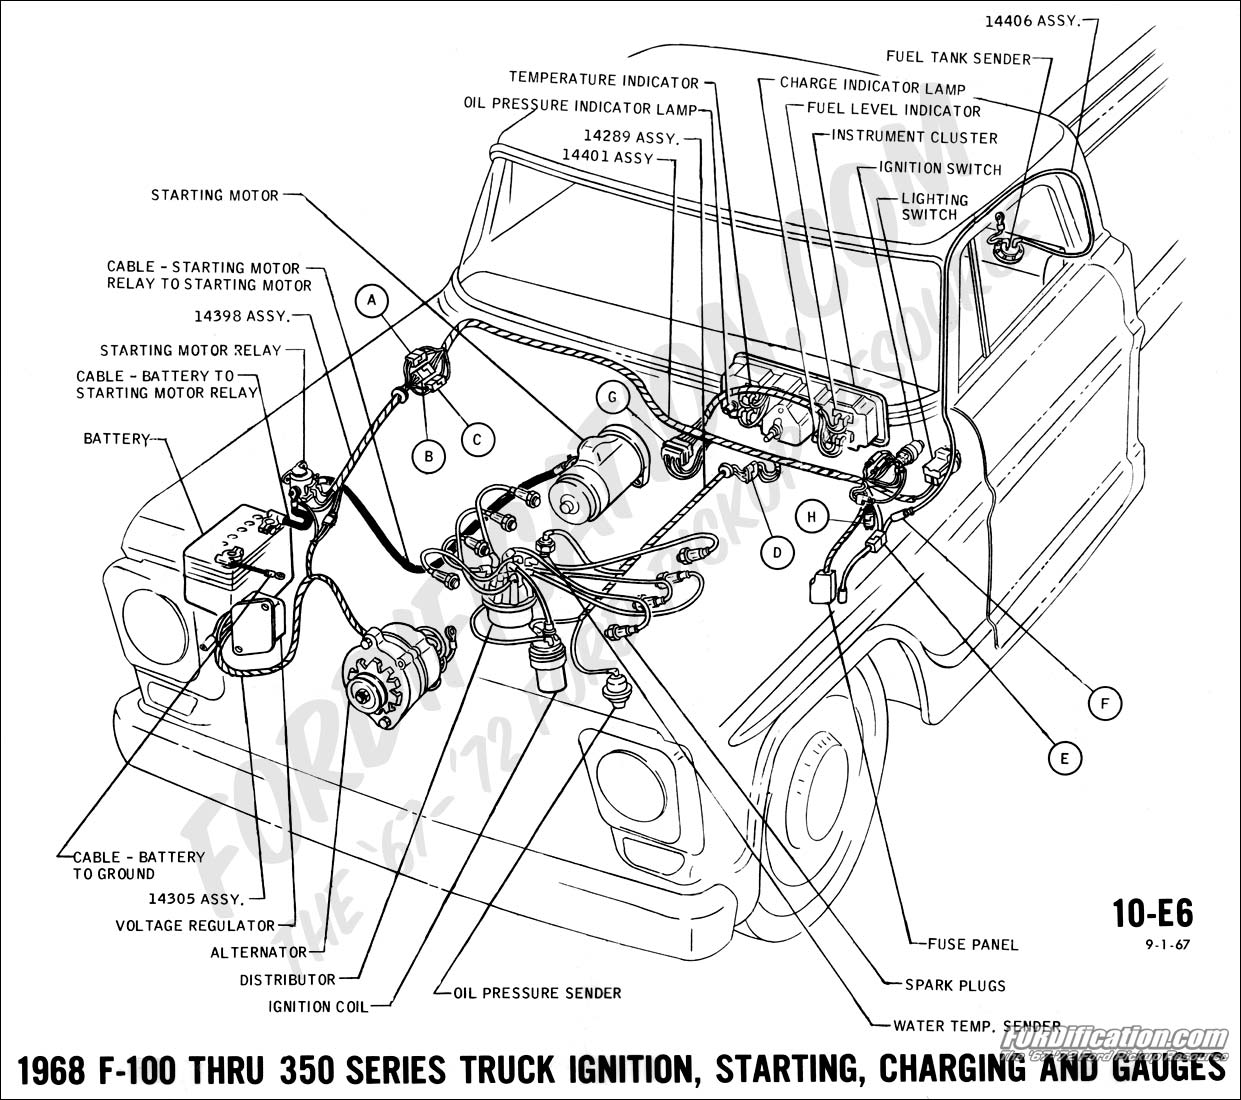 1999 Dodge Dakota Wiring Diagram Lighter likewise 2014 Dodge Durango Fuse Diagram besides Discussion T30026 ds538617 further 2002 Kia Spectra Engine Diagram besides P 0996b43f80759dae. on dodge charger battery location